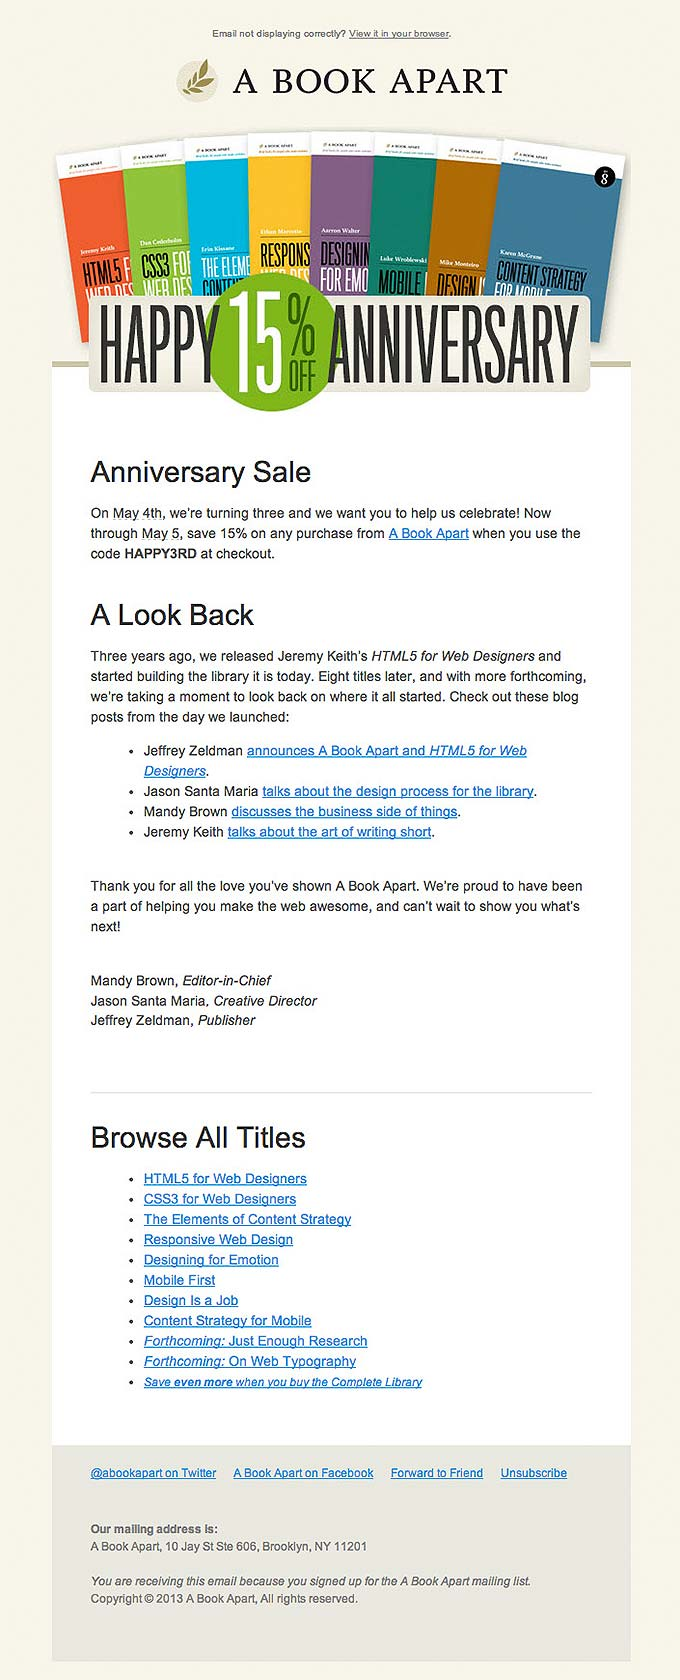 Product Promotional Email Design from A Book Apart